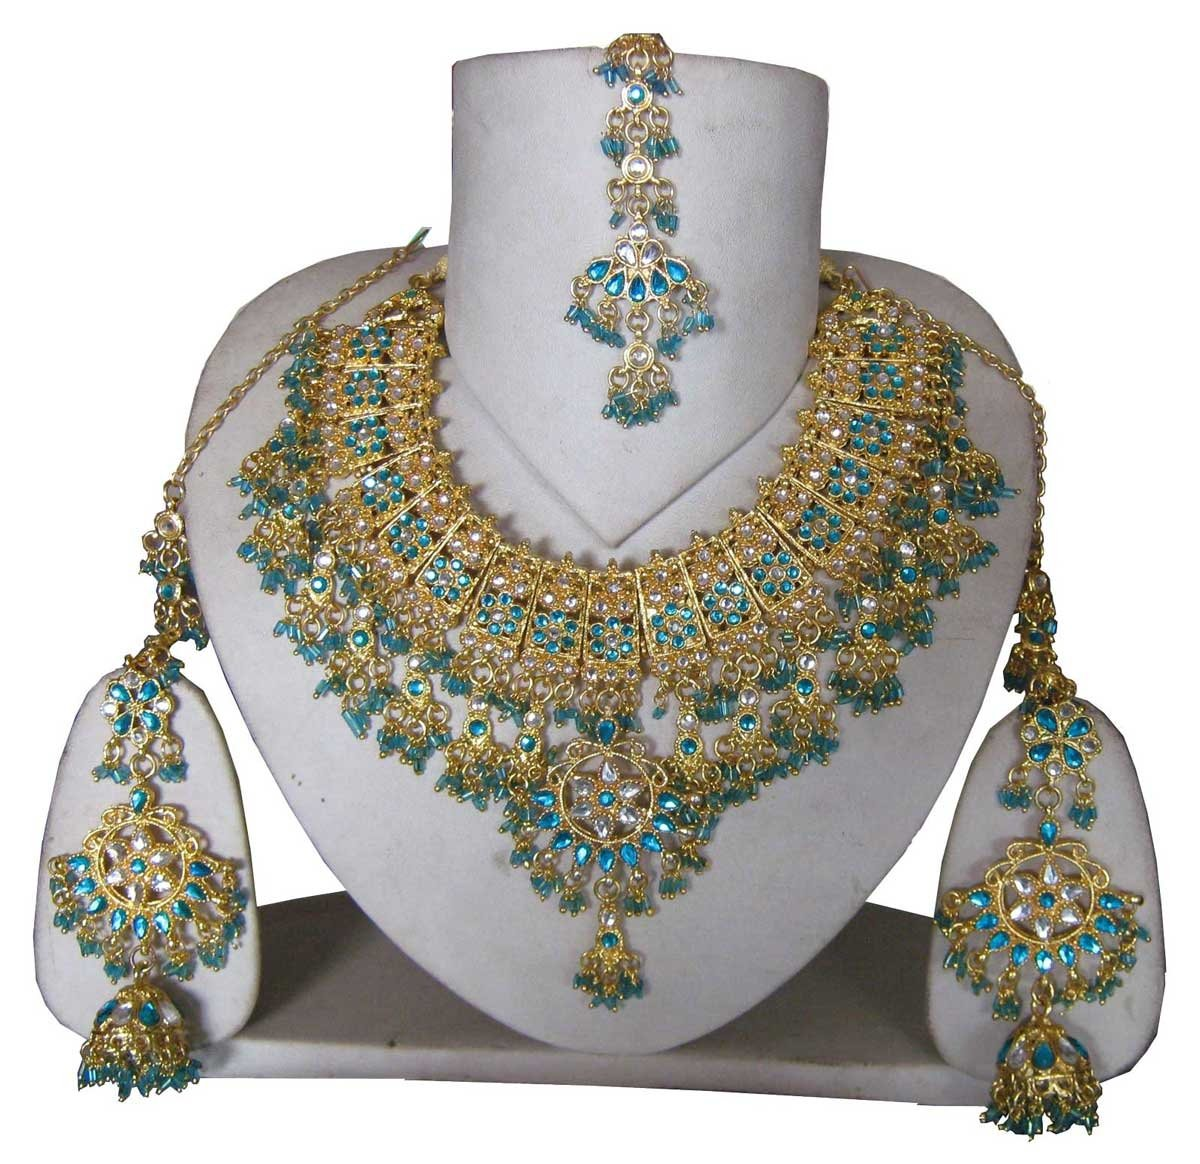 Imitation jewellery world fashion jewellery Design and style fashion jewelry